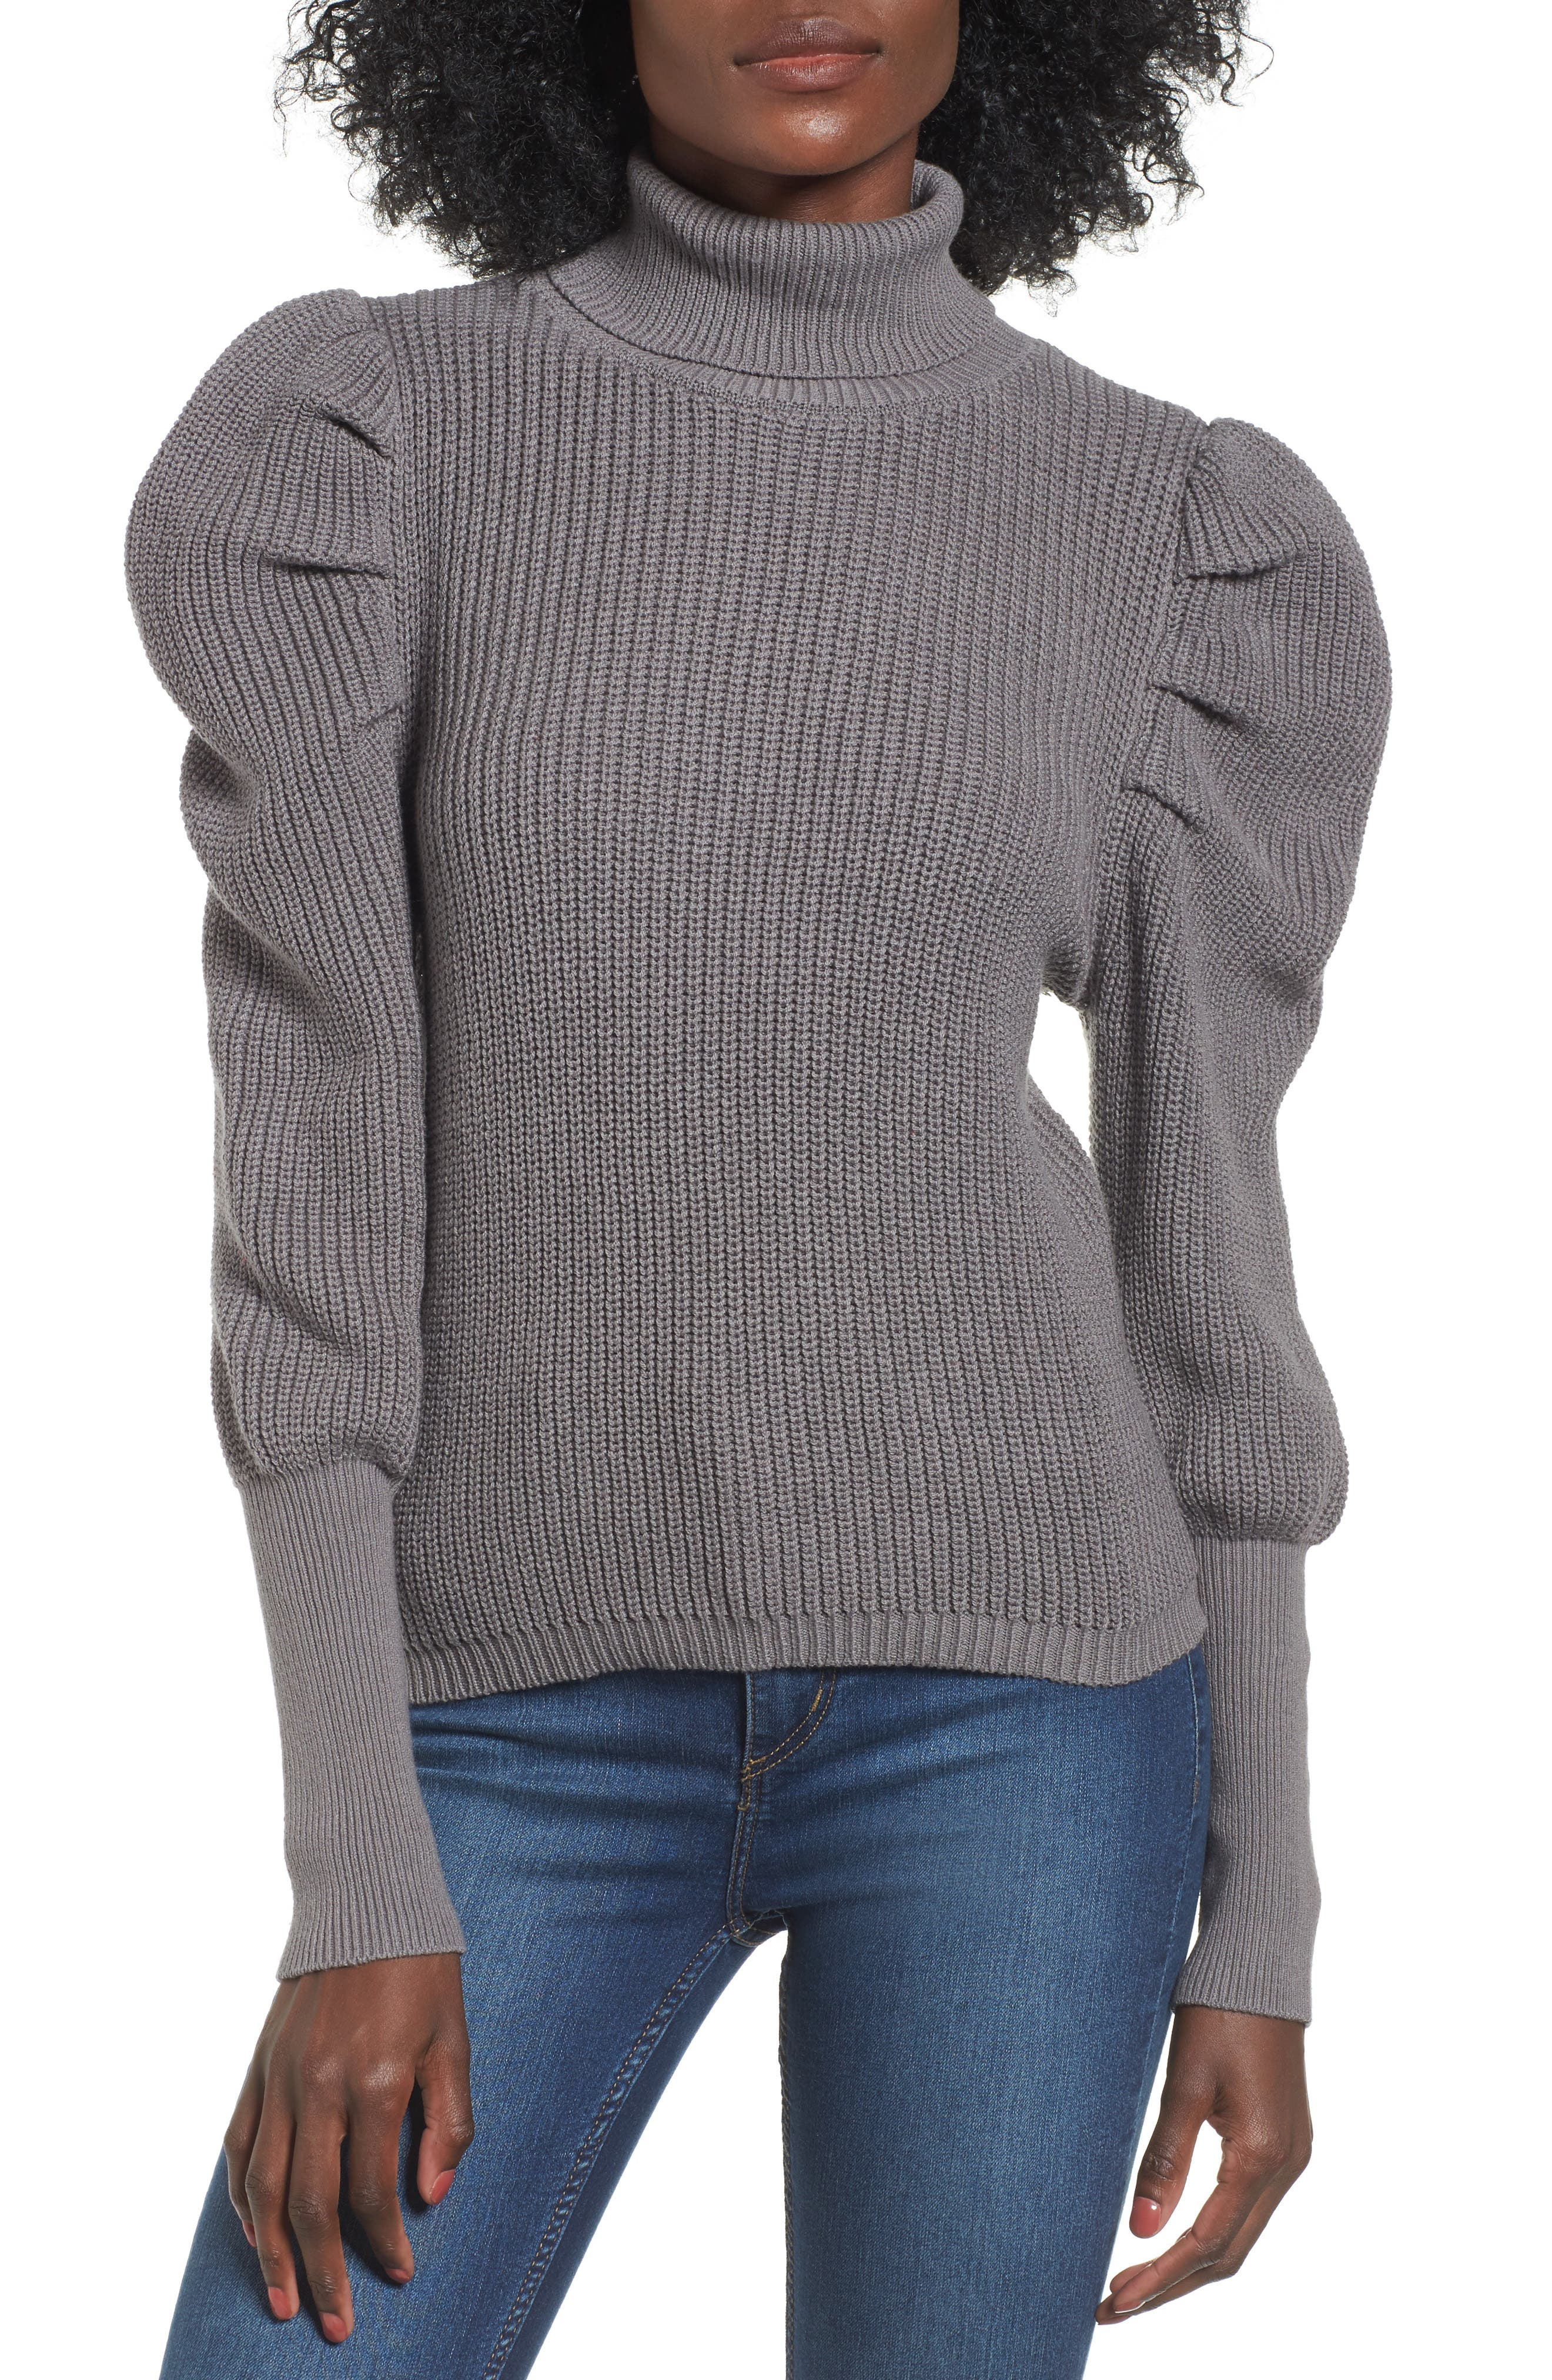 Puff Sleeve Turtleneck Sweater,                             Main thumbnail 1, color,                             030